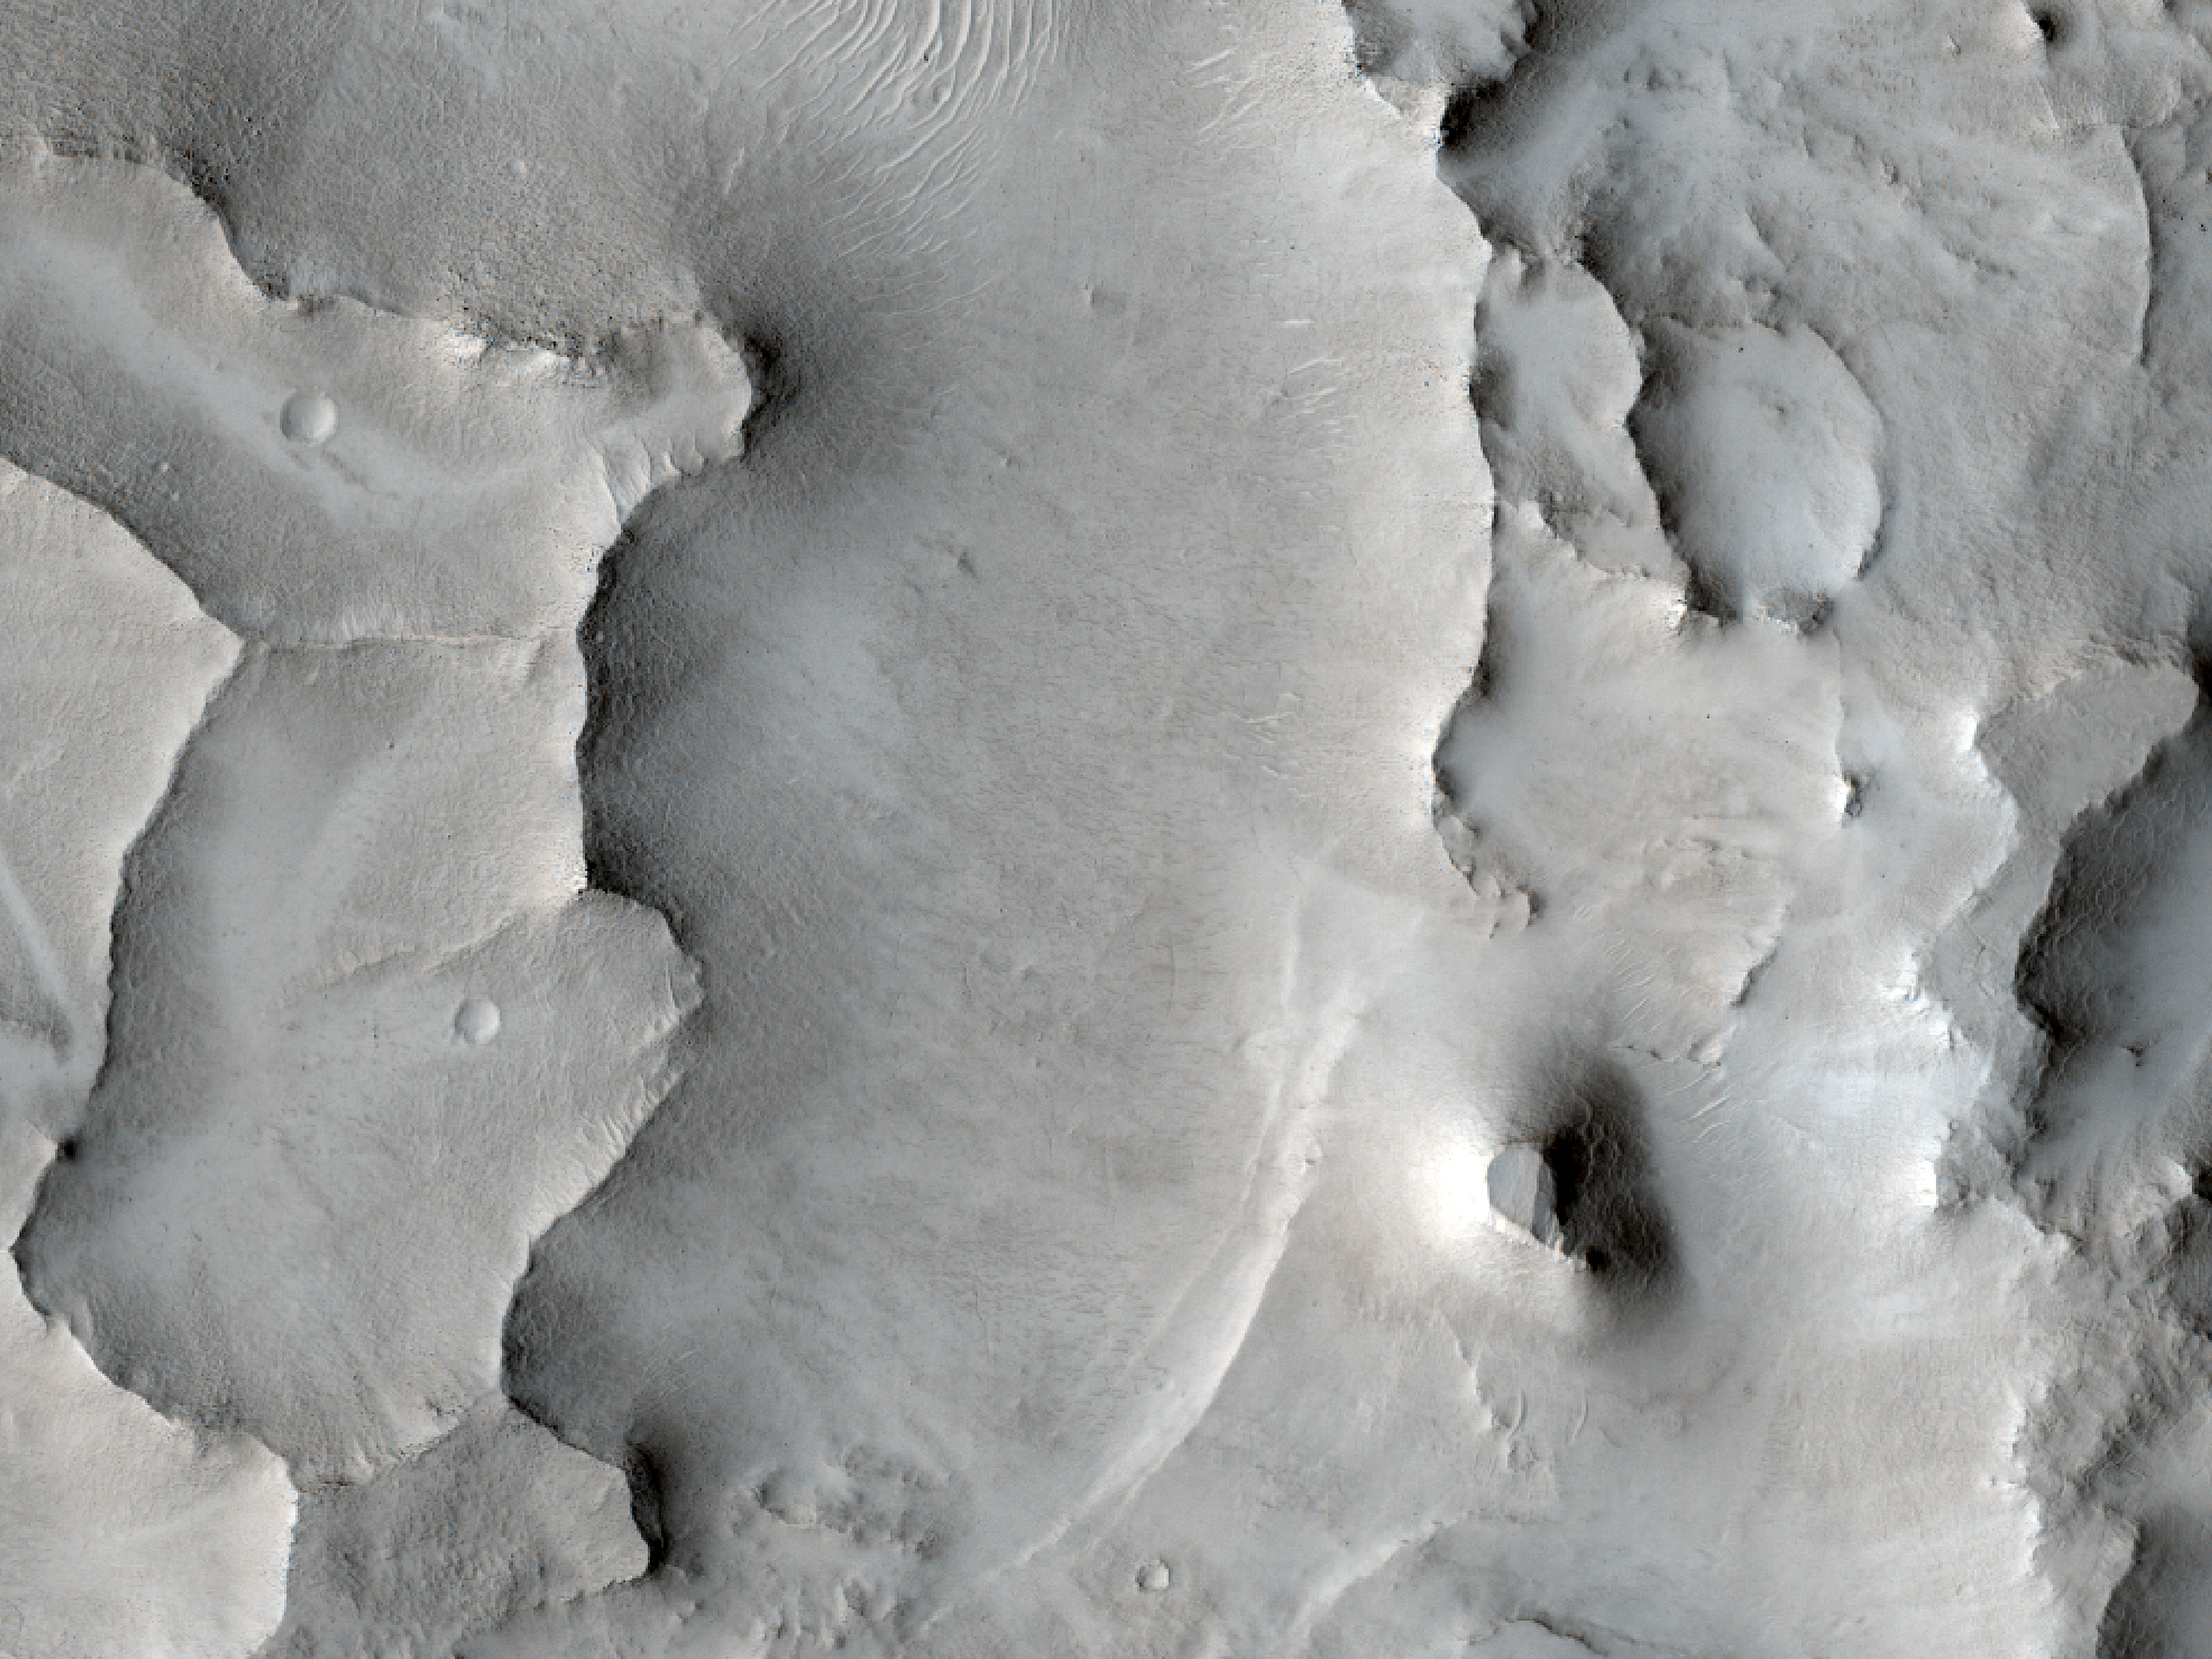 Layers West of Huo Hsing Vallis